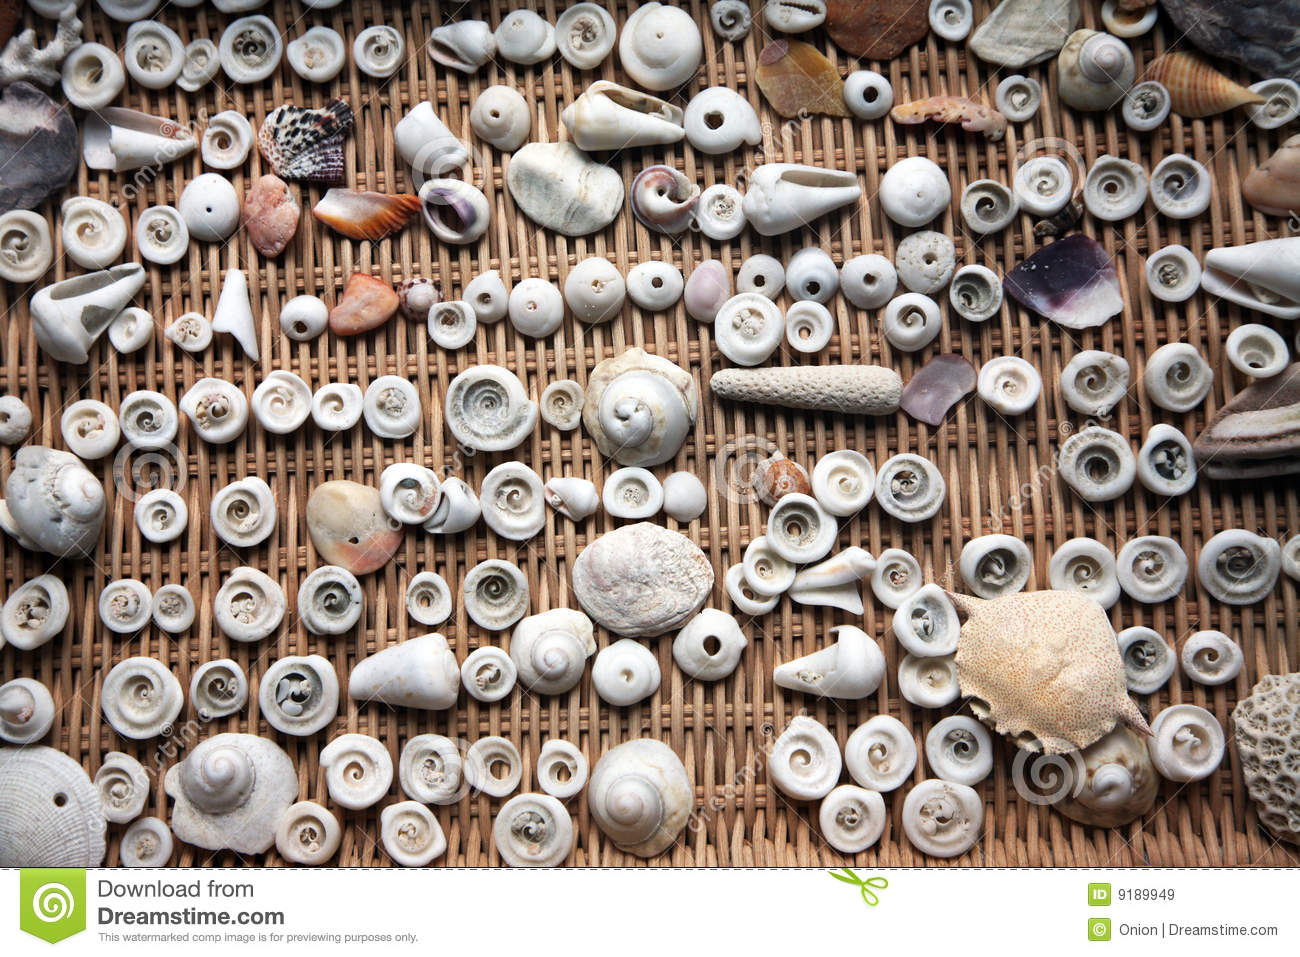 Seashells in vari formati